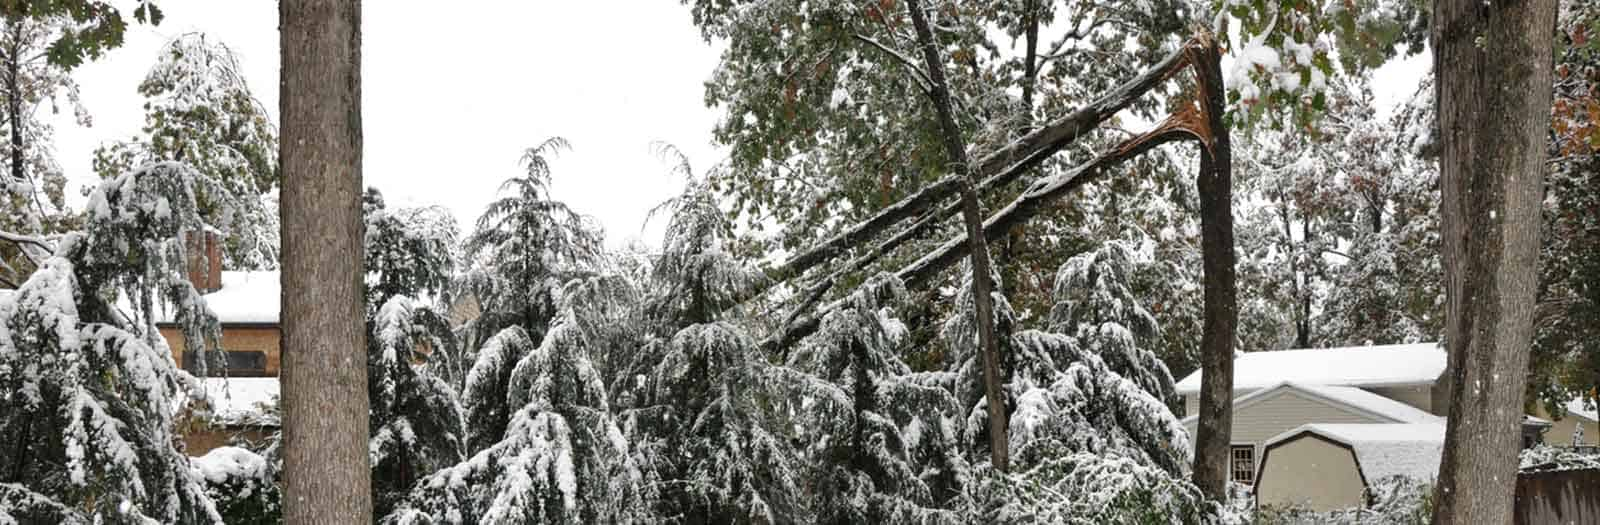 trees damaged and fallen from snow storm